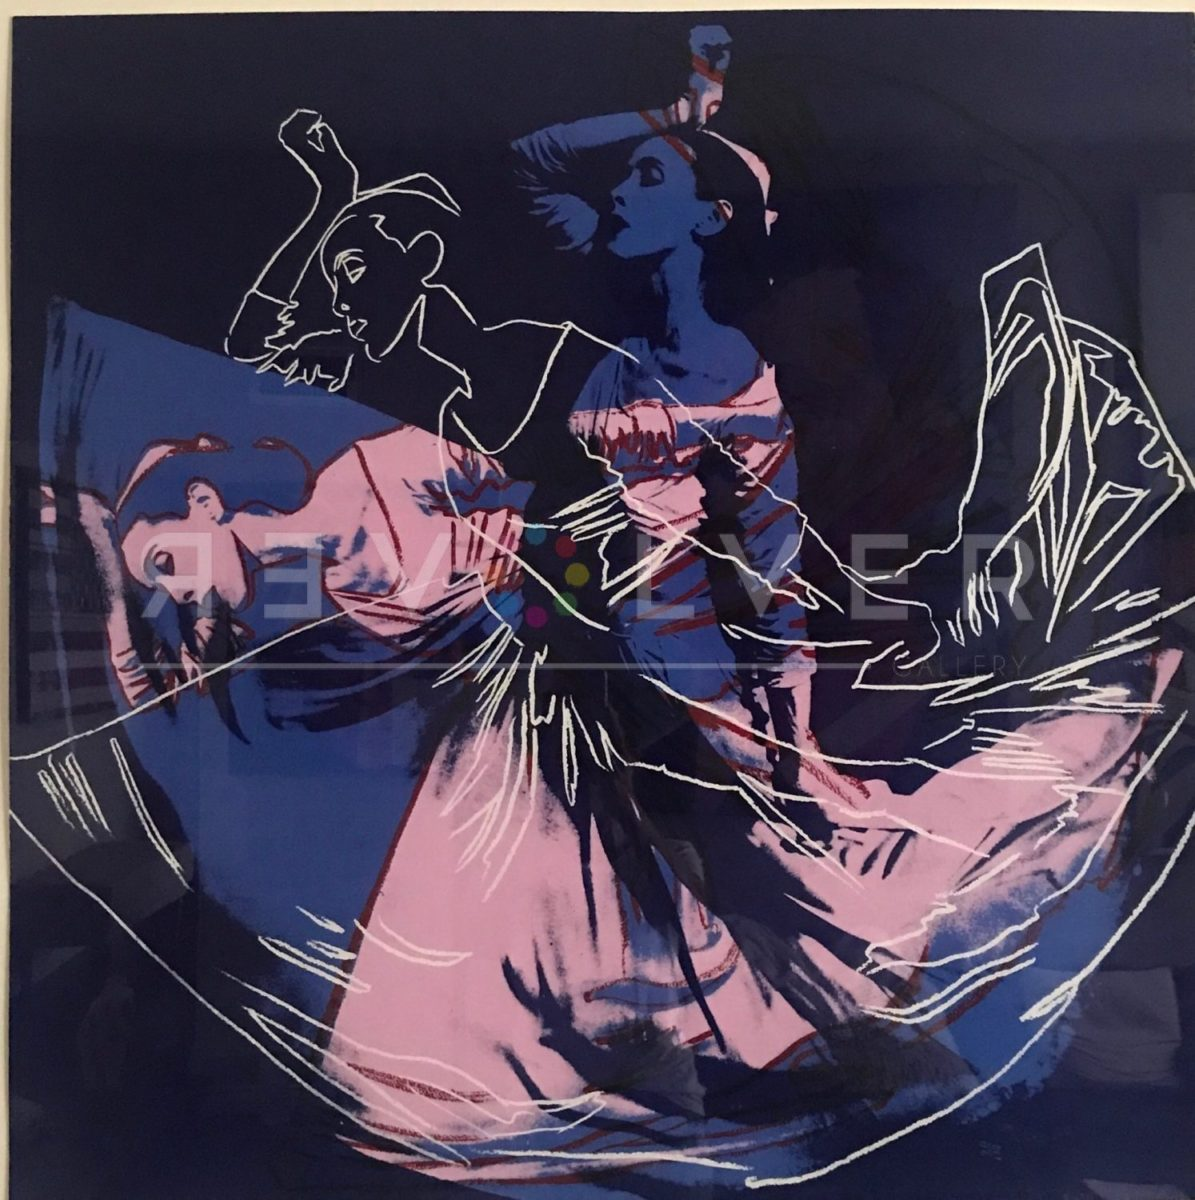 Andy Warhol - Letter to the World (The Kick) F.S. II 389 unique jpg